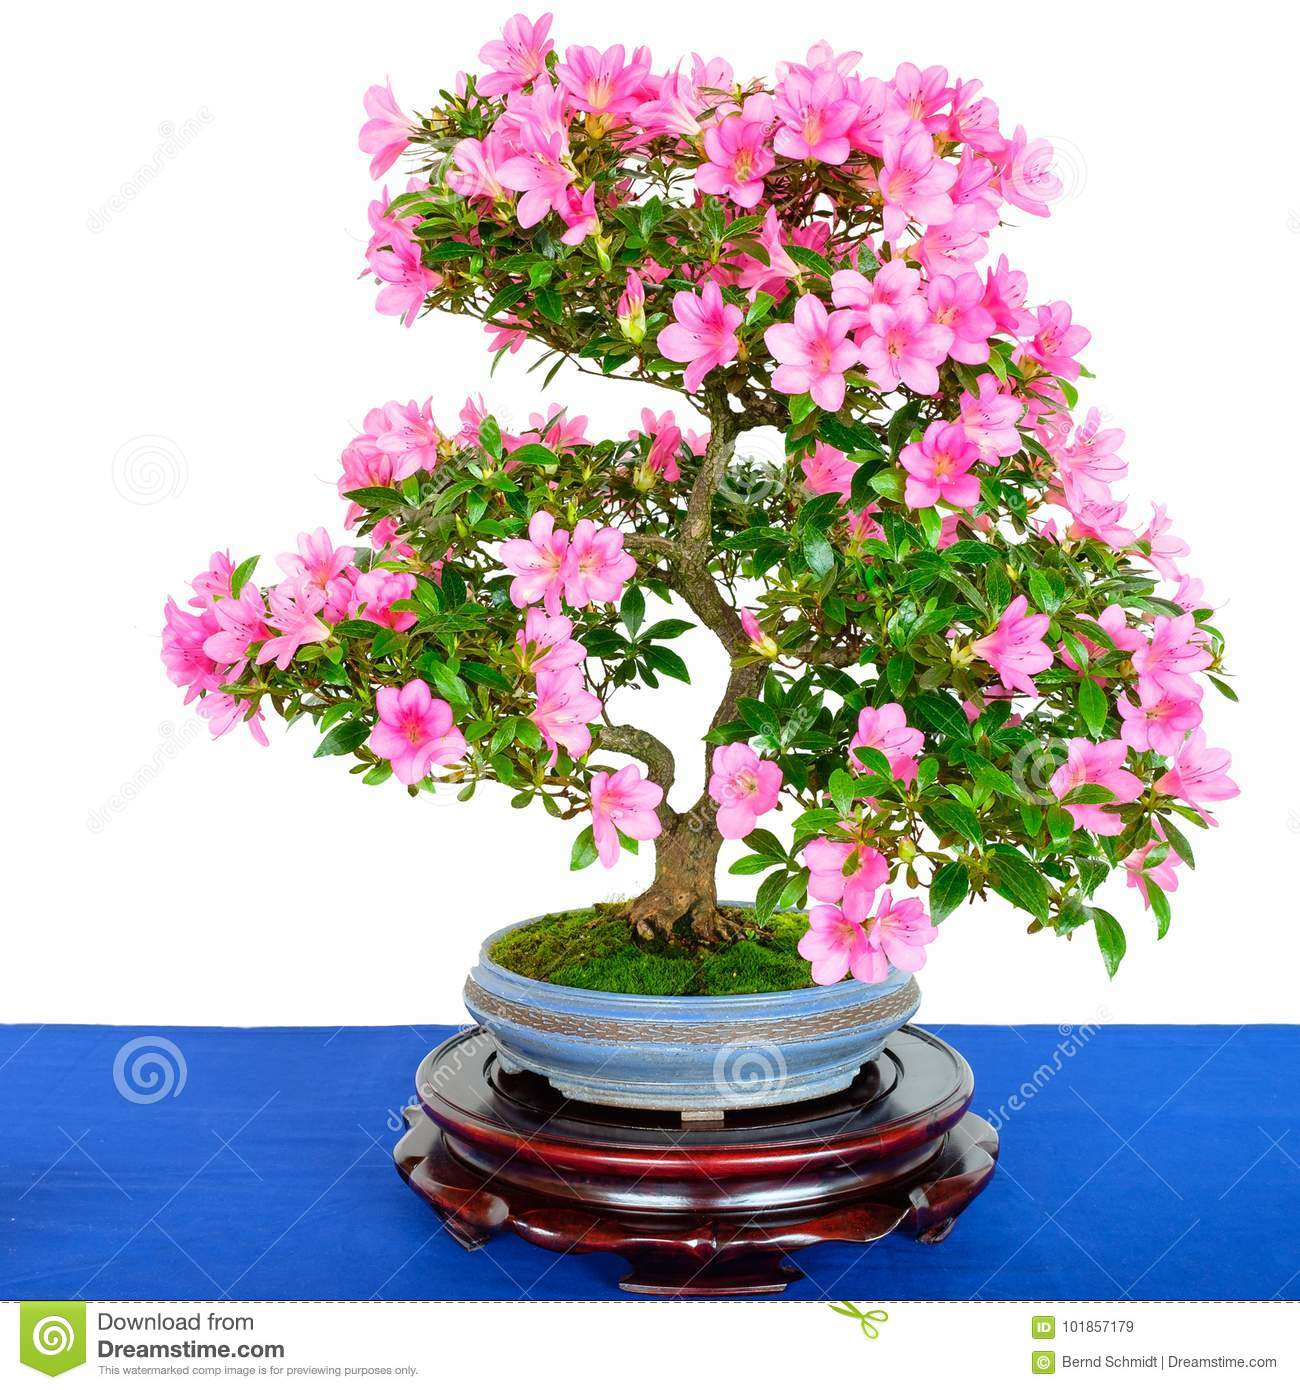 Rhododendron Indicum Bonsai Tree With Pink Flowers Stock Image